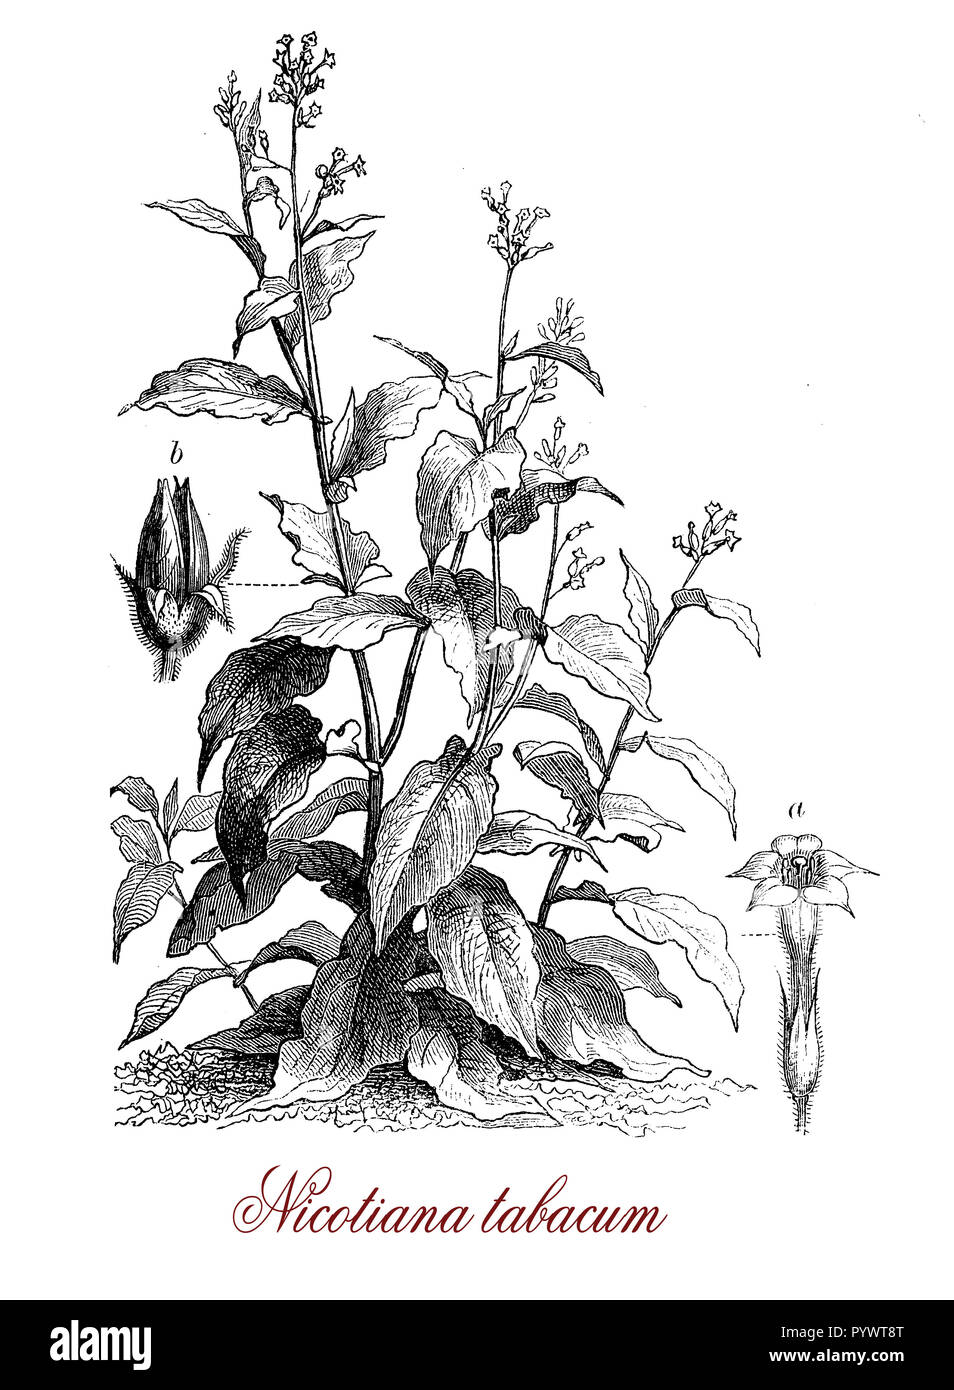 Vintage botanical engraving of cultivated tobacco, plant found only in cultivation, the leaves are commercially processed into tobacco. All part plants are sticky covered by a secretion containing nicotine, except the seeds. - Stock Image